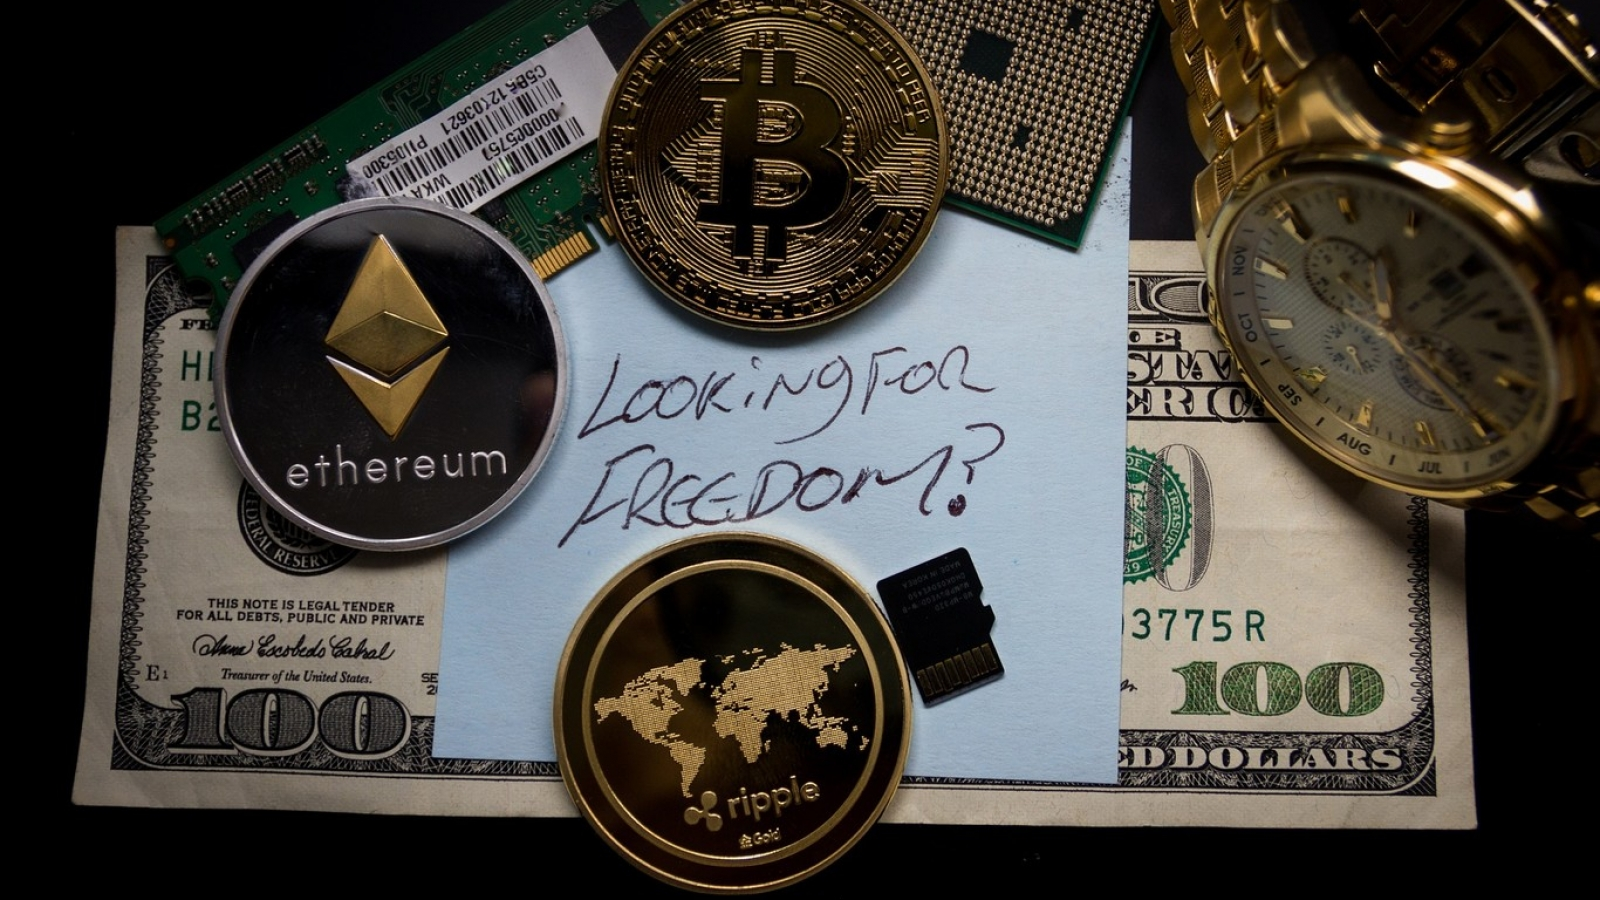 cryptocurrency, virtual currency and digital money